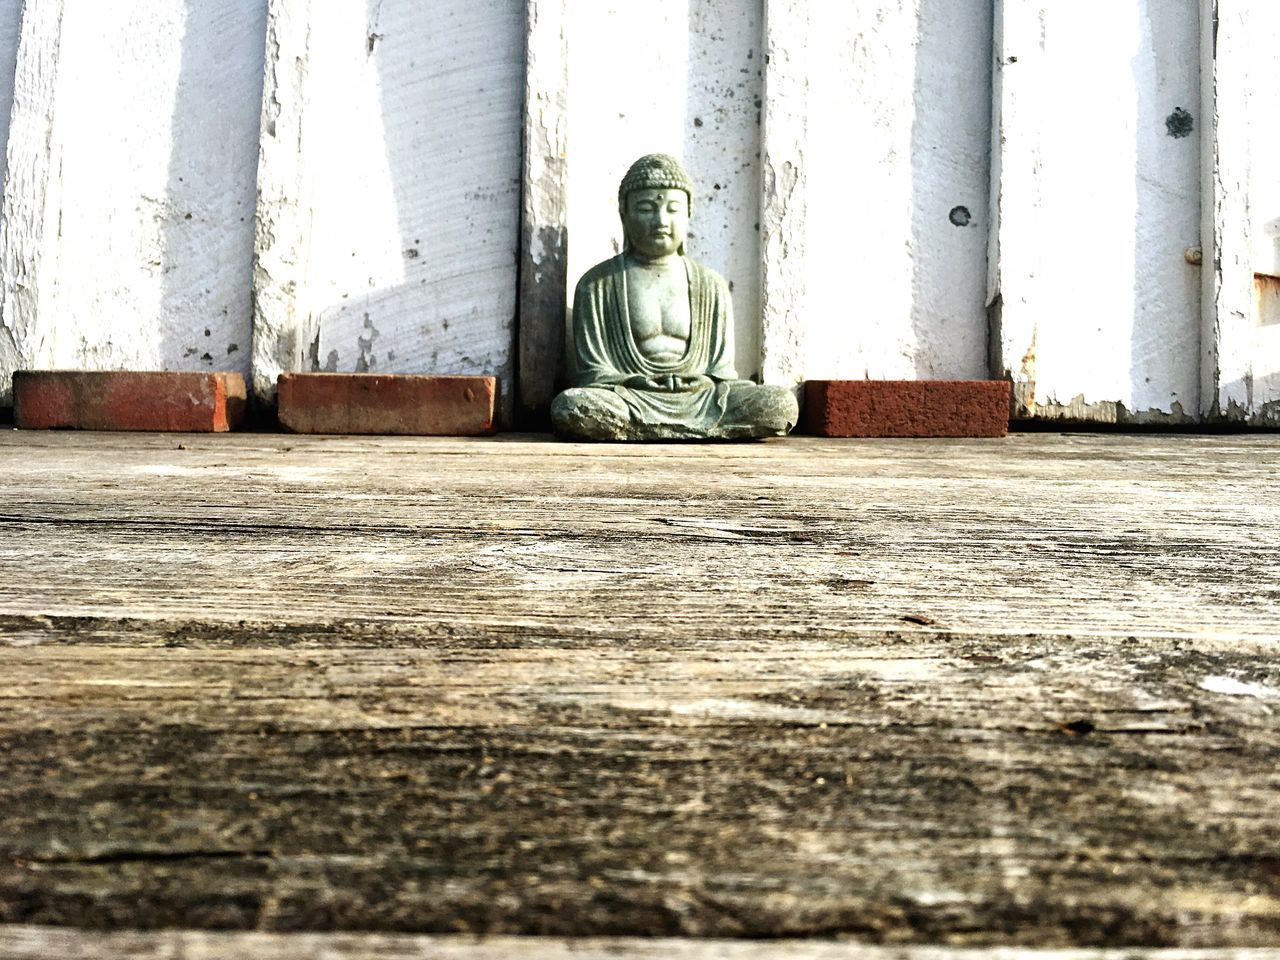 religion, human representation, statue, spirituality, sculpture, male likeness, built structure, day, architectural column, ancient, place of worship, indoors, architecture, ancient civilization, no people, close-up